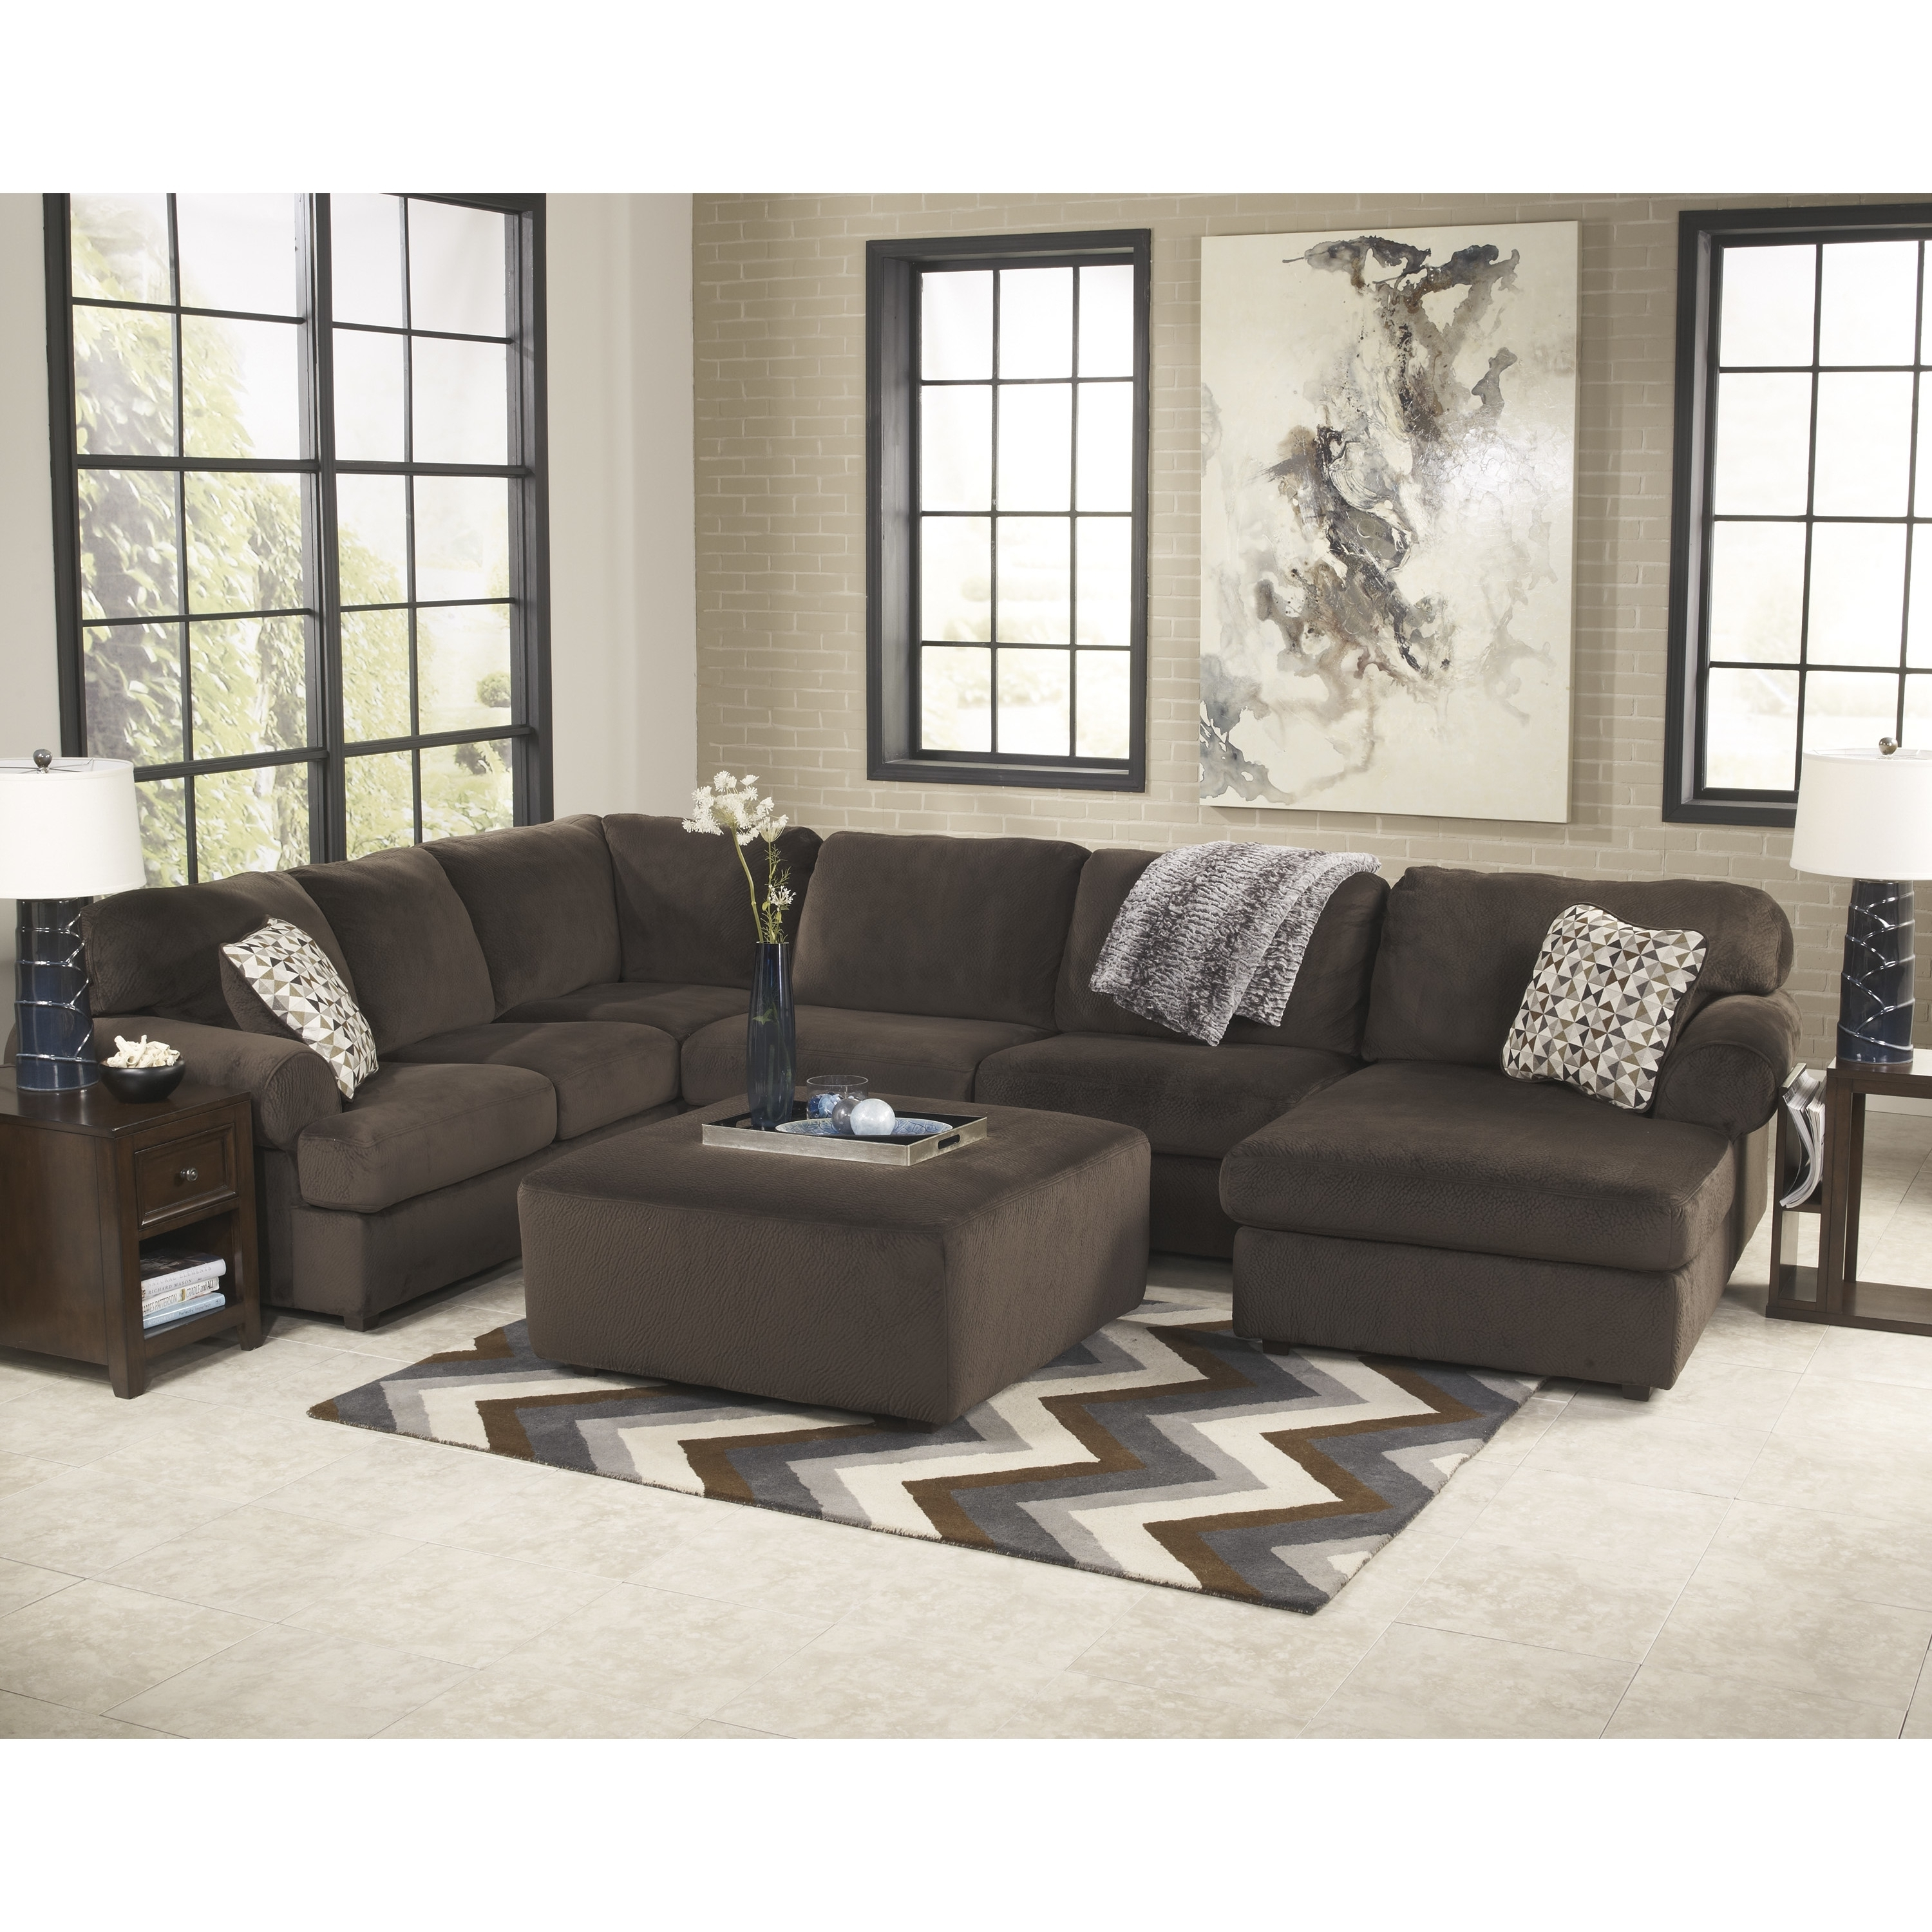 2017 Sectional Sofas At Austin Inside Brilliant Sectional Sofas Austin Tx – Buildsimplehome (View 2 of 15)